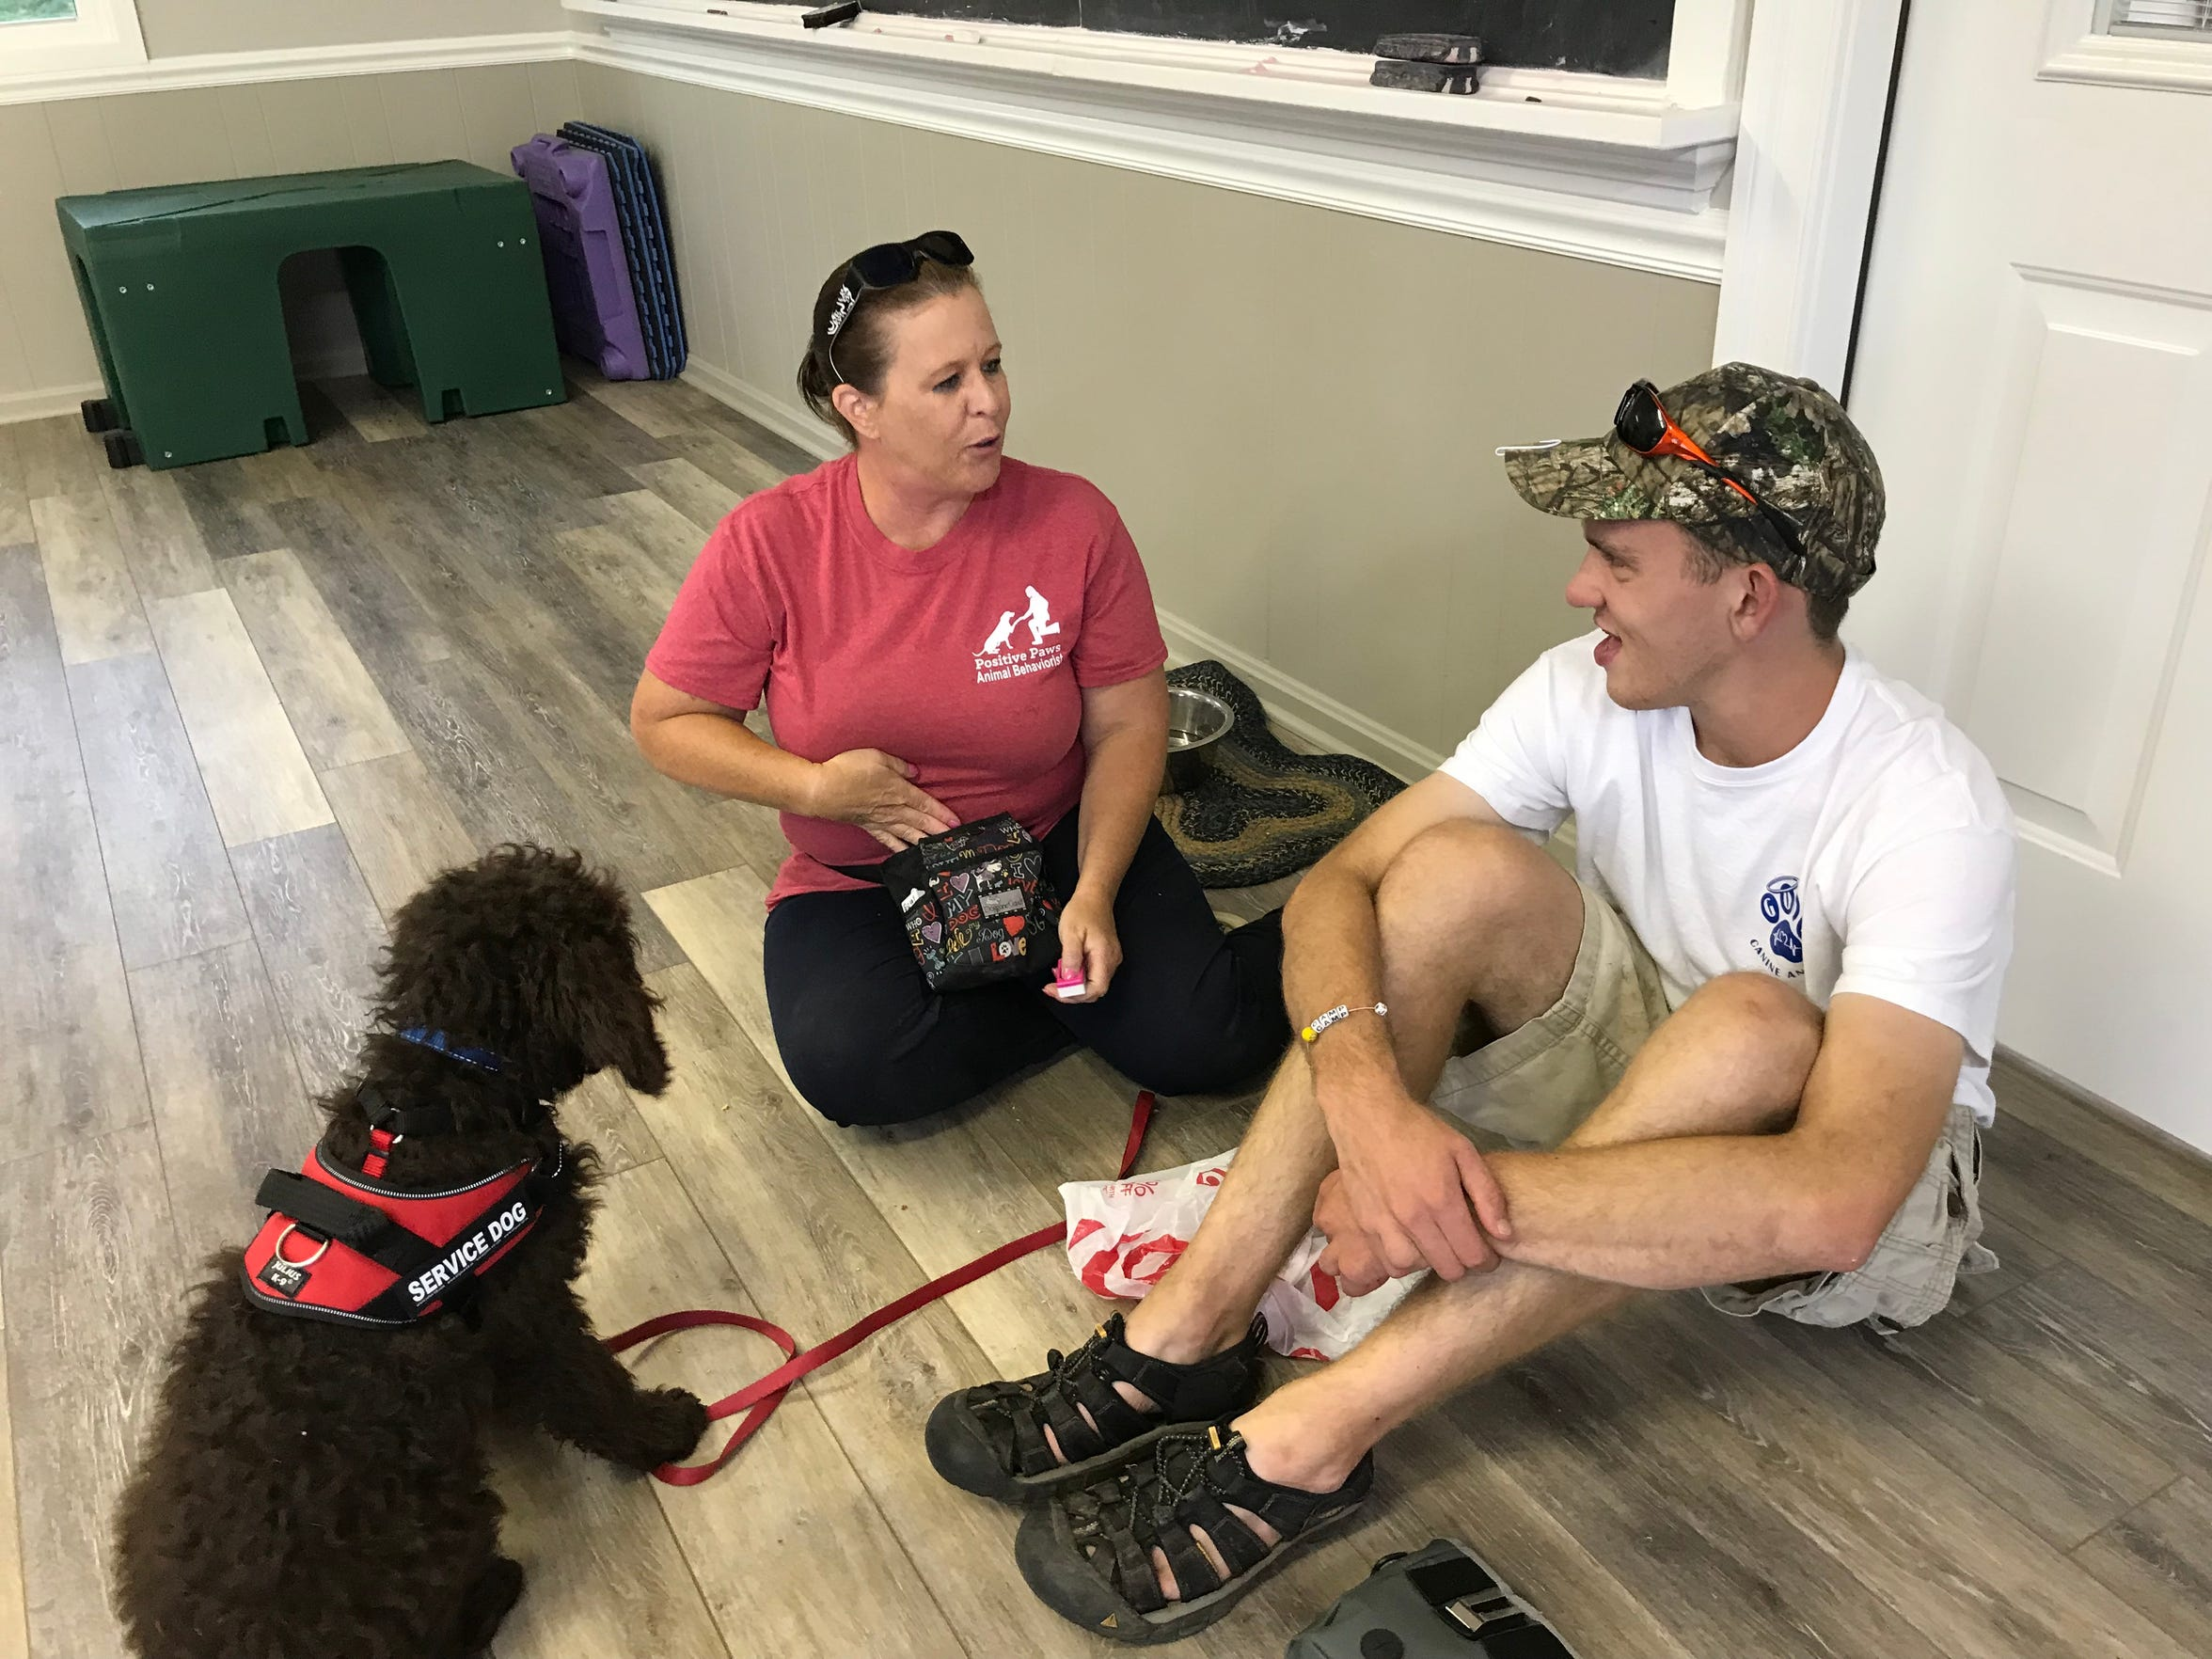 Stacey Payne, co-founder of God's Canine Angels in Stuarts Draft, Virginia, trains with Mcgregor Knemoller and his service dog Mace. Knemoller volunteers at Positive Paws, owned by Payne, four days a week as part of the Augusta County Regional Post High School Program.